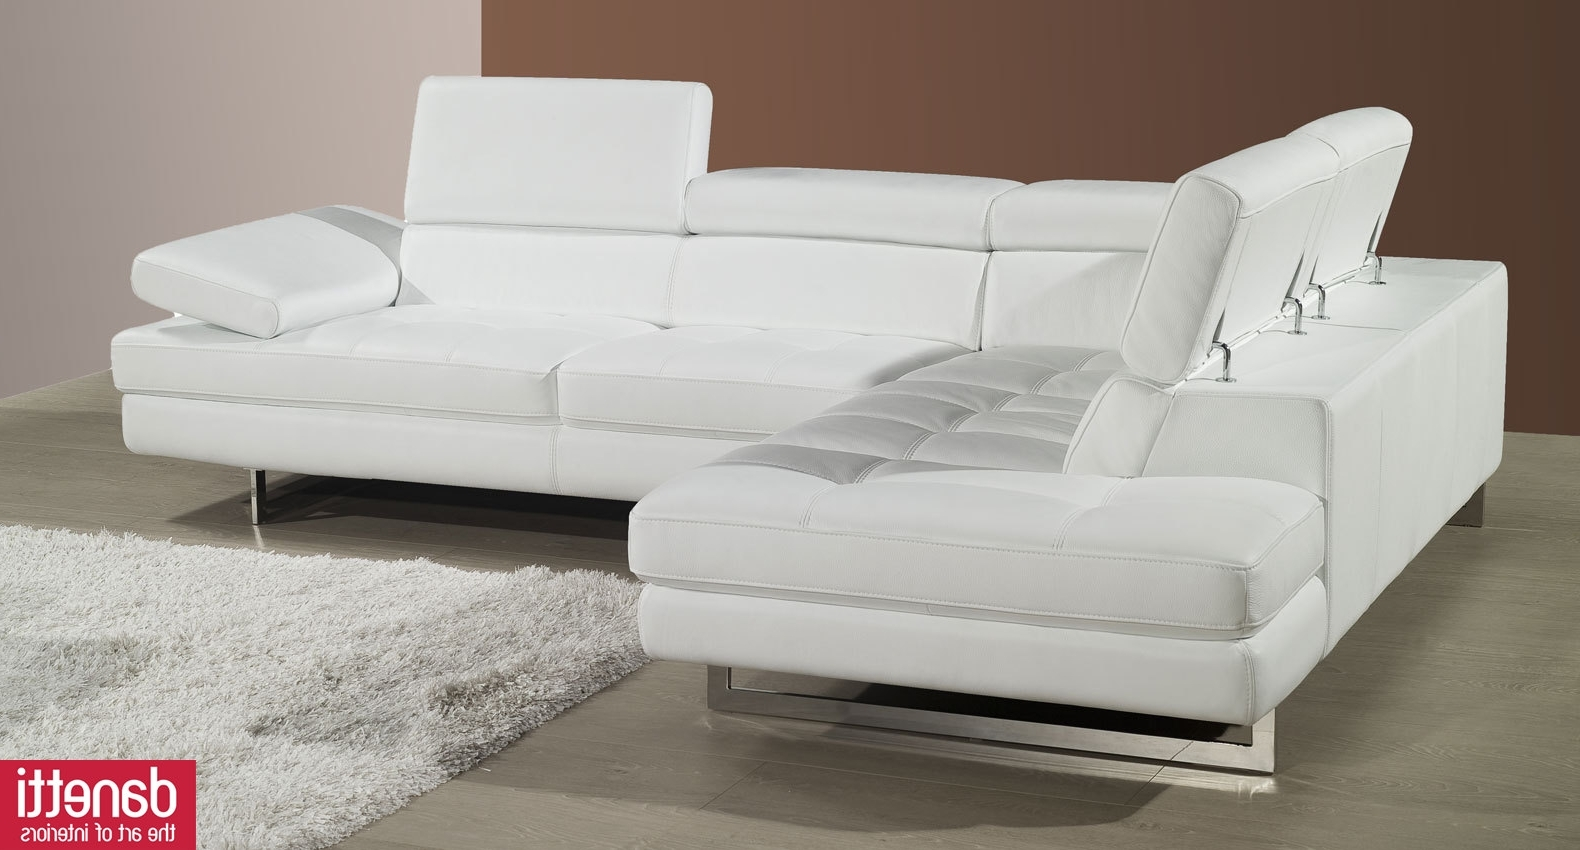 Well Known White Modern Sofas Within Beautiful White Leather Modern Sofa 85 On Modern Sofa Inspiration (View 16 of 20)